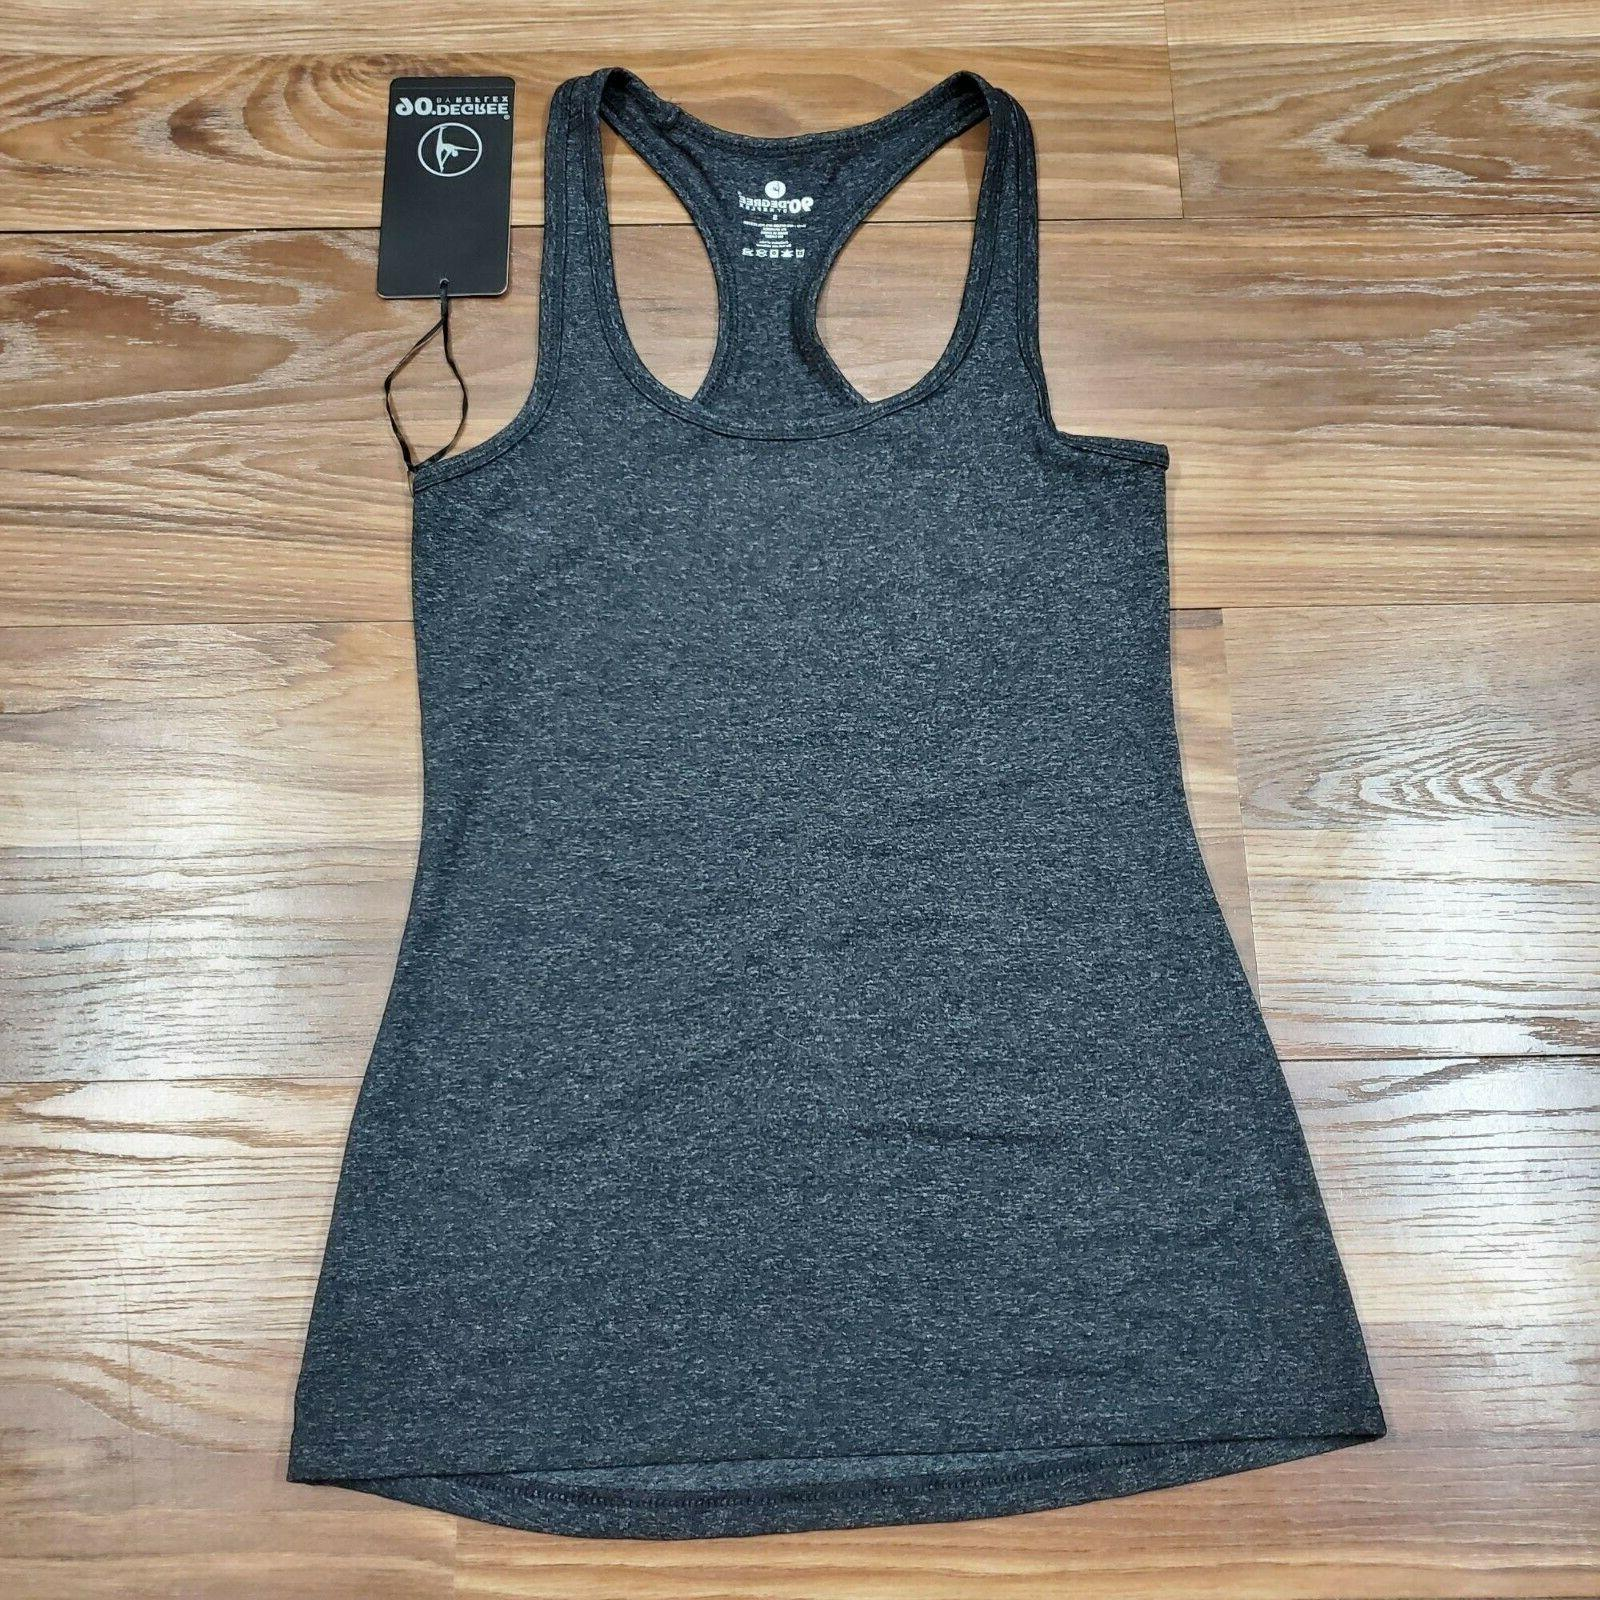 90 Degree By Reflex SMALL Racer Top